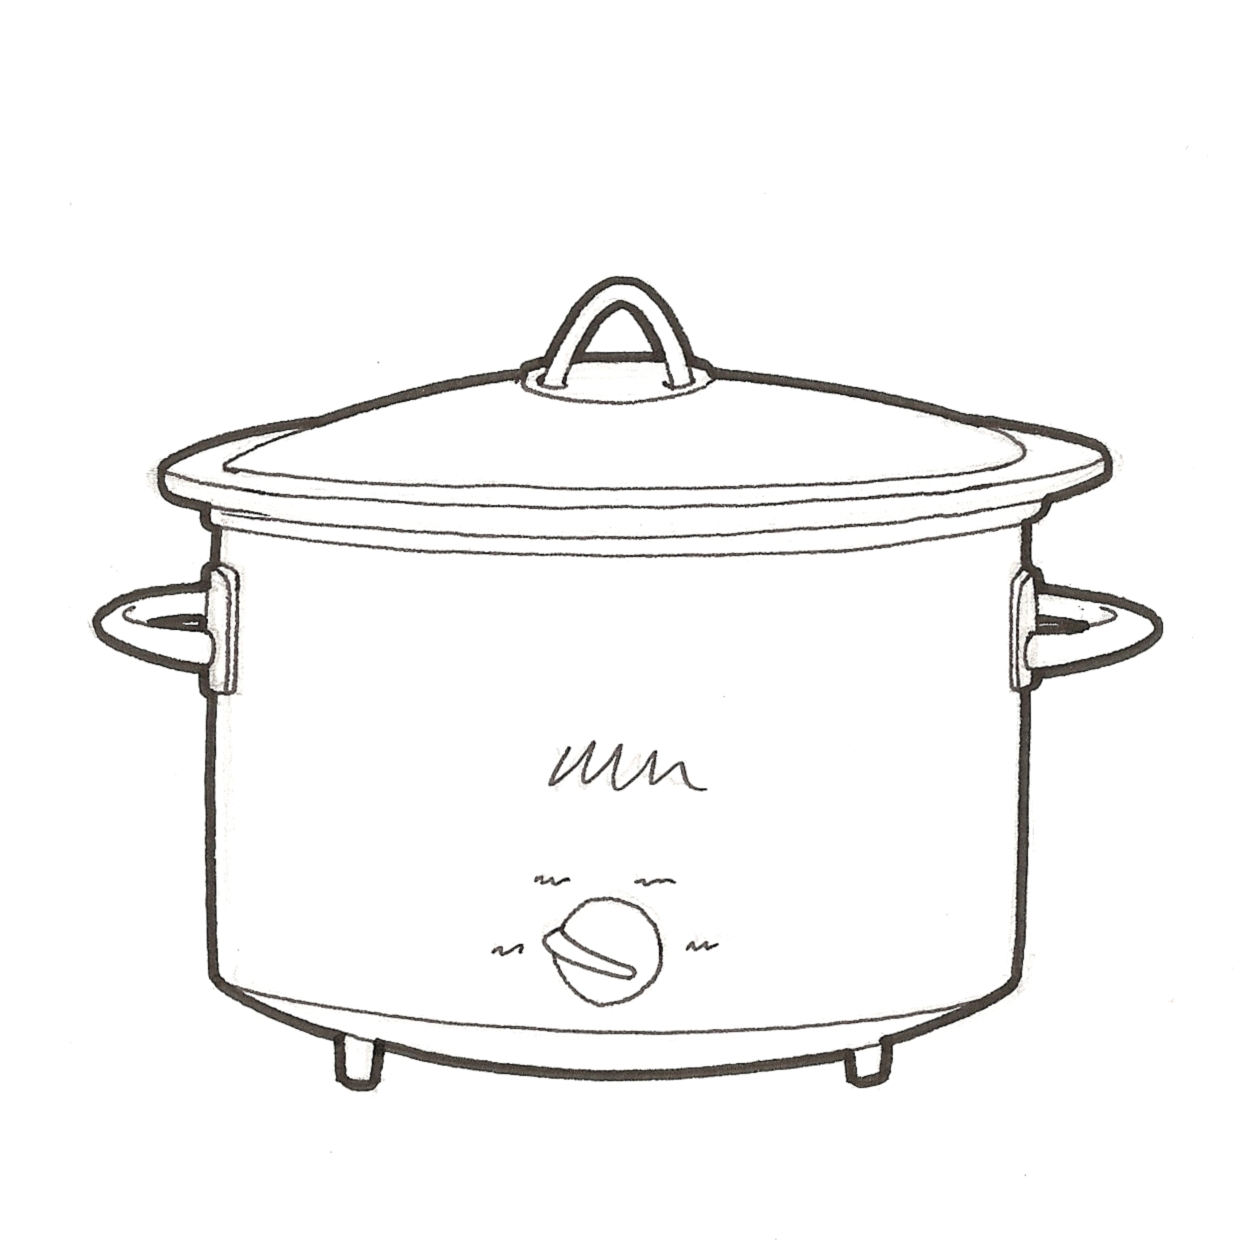 Crockpot clipart image royalty free library Free Crockpot Cliparts, Download Free Clip Art, Free Clip Art on ... image royalty free library